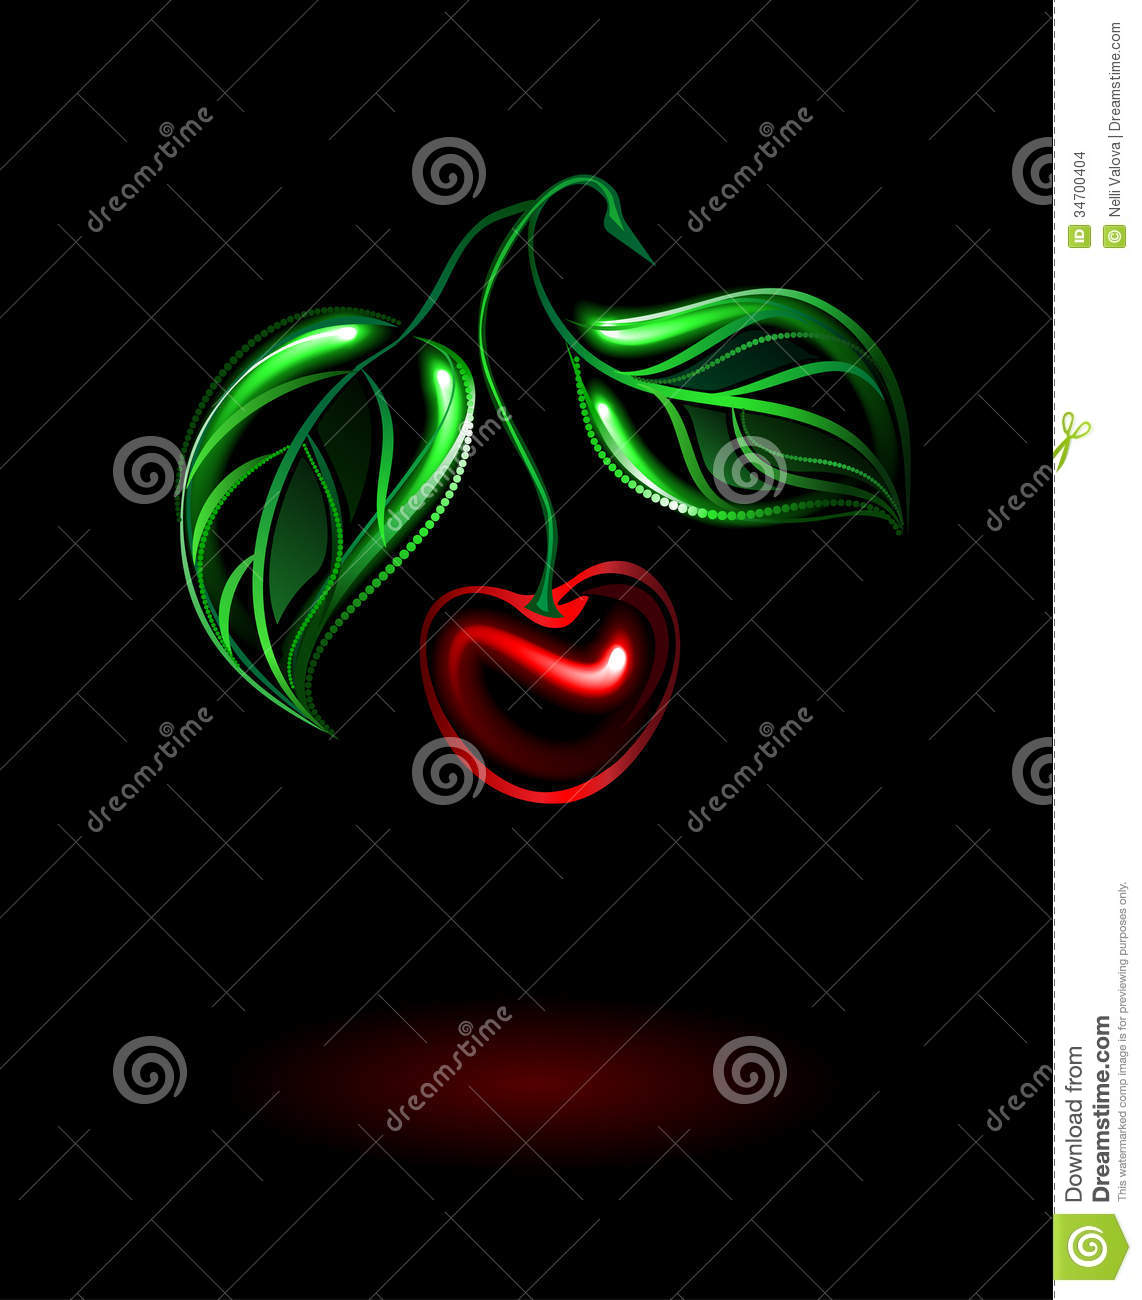 Glowing Cherry Stock Images - Image: 34700404